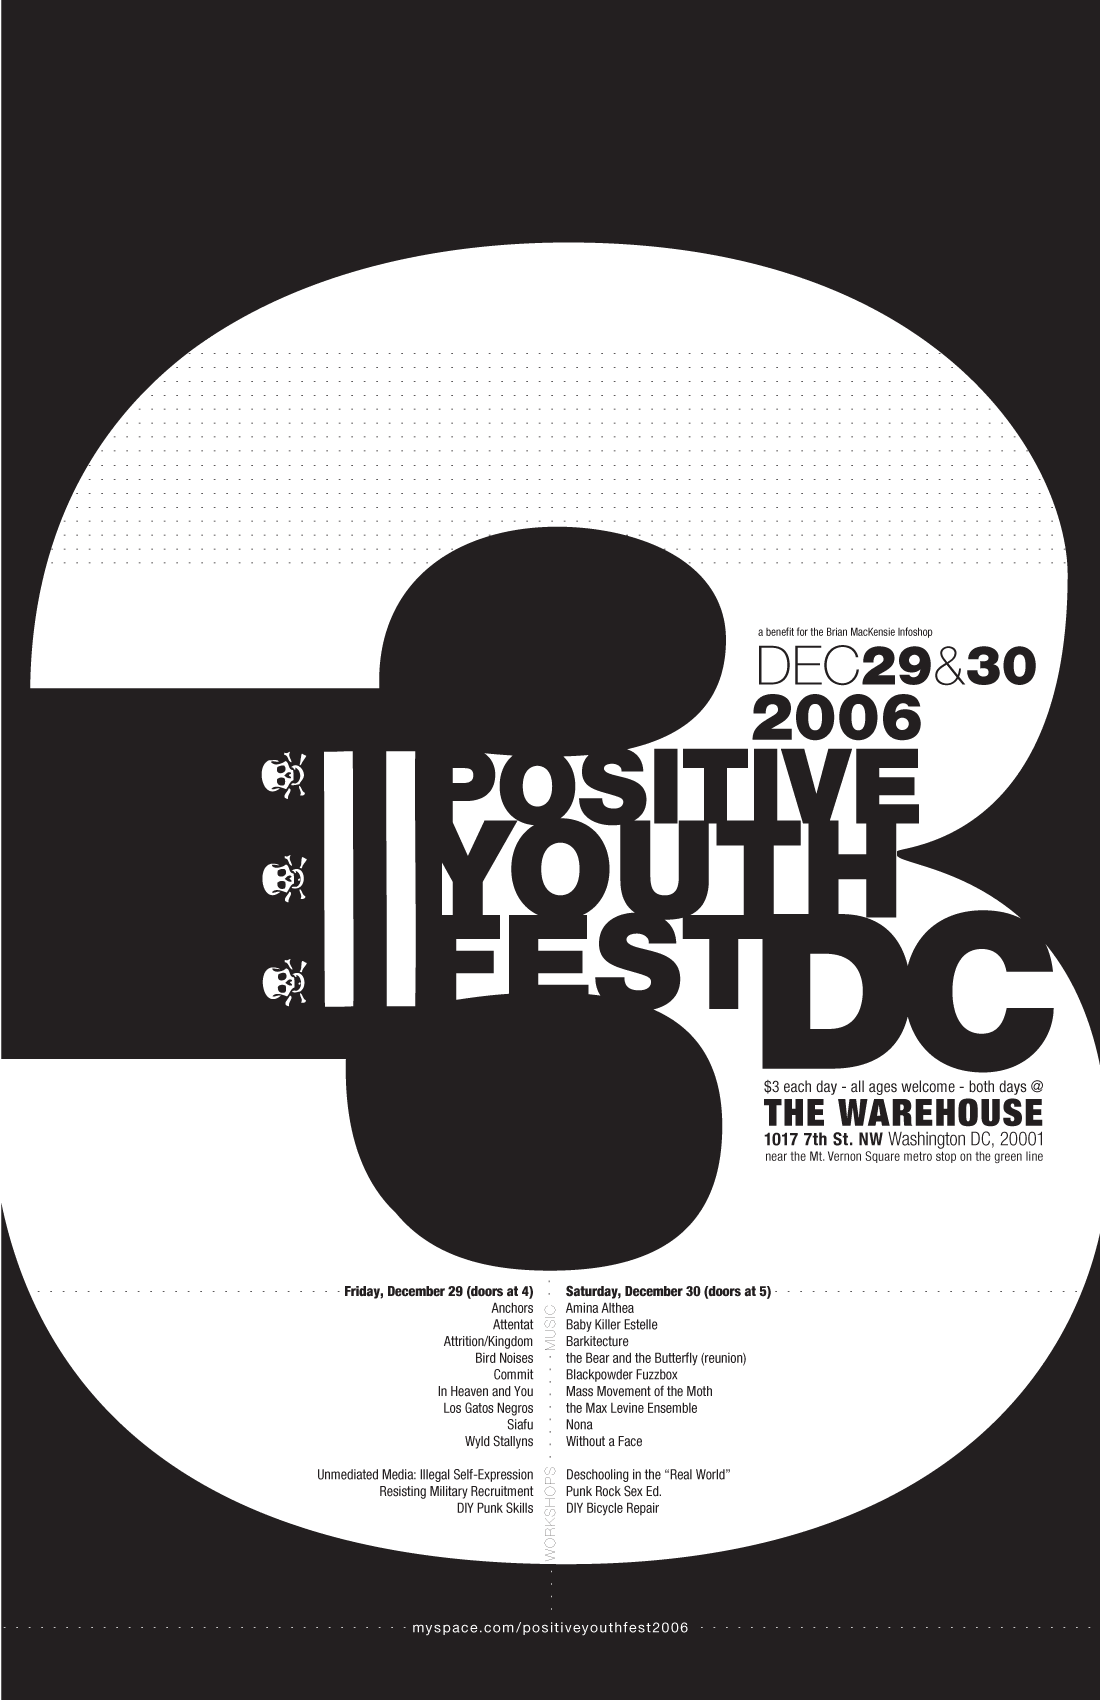 Positive Youth Fest 3 Poster